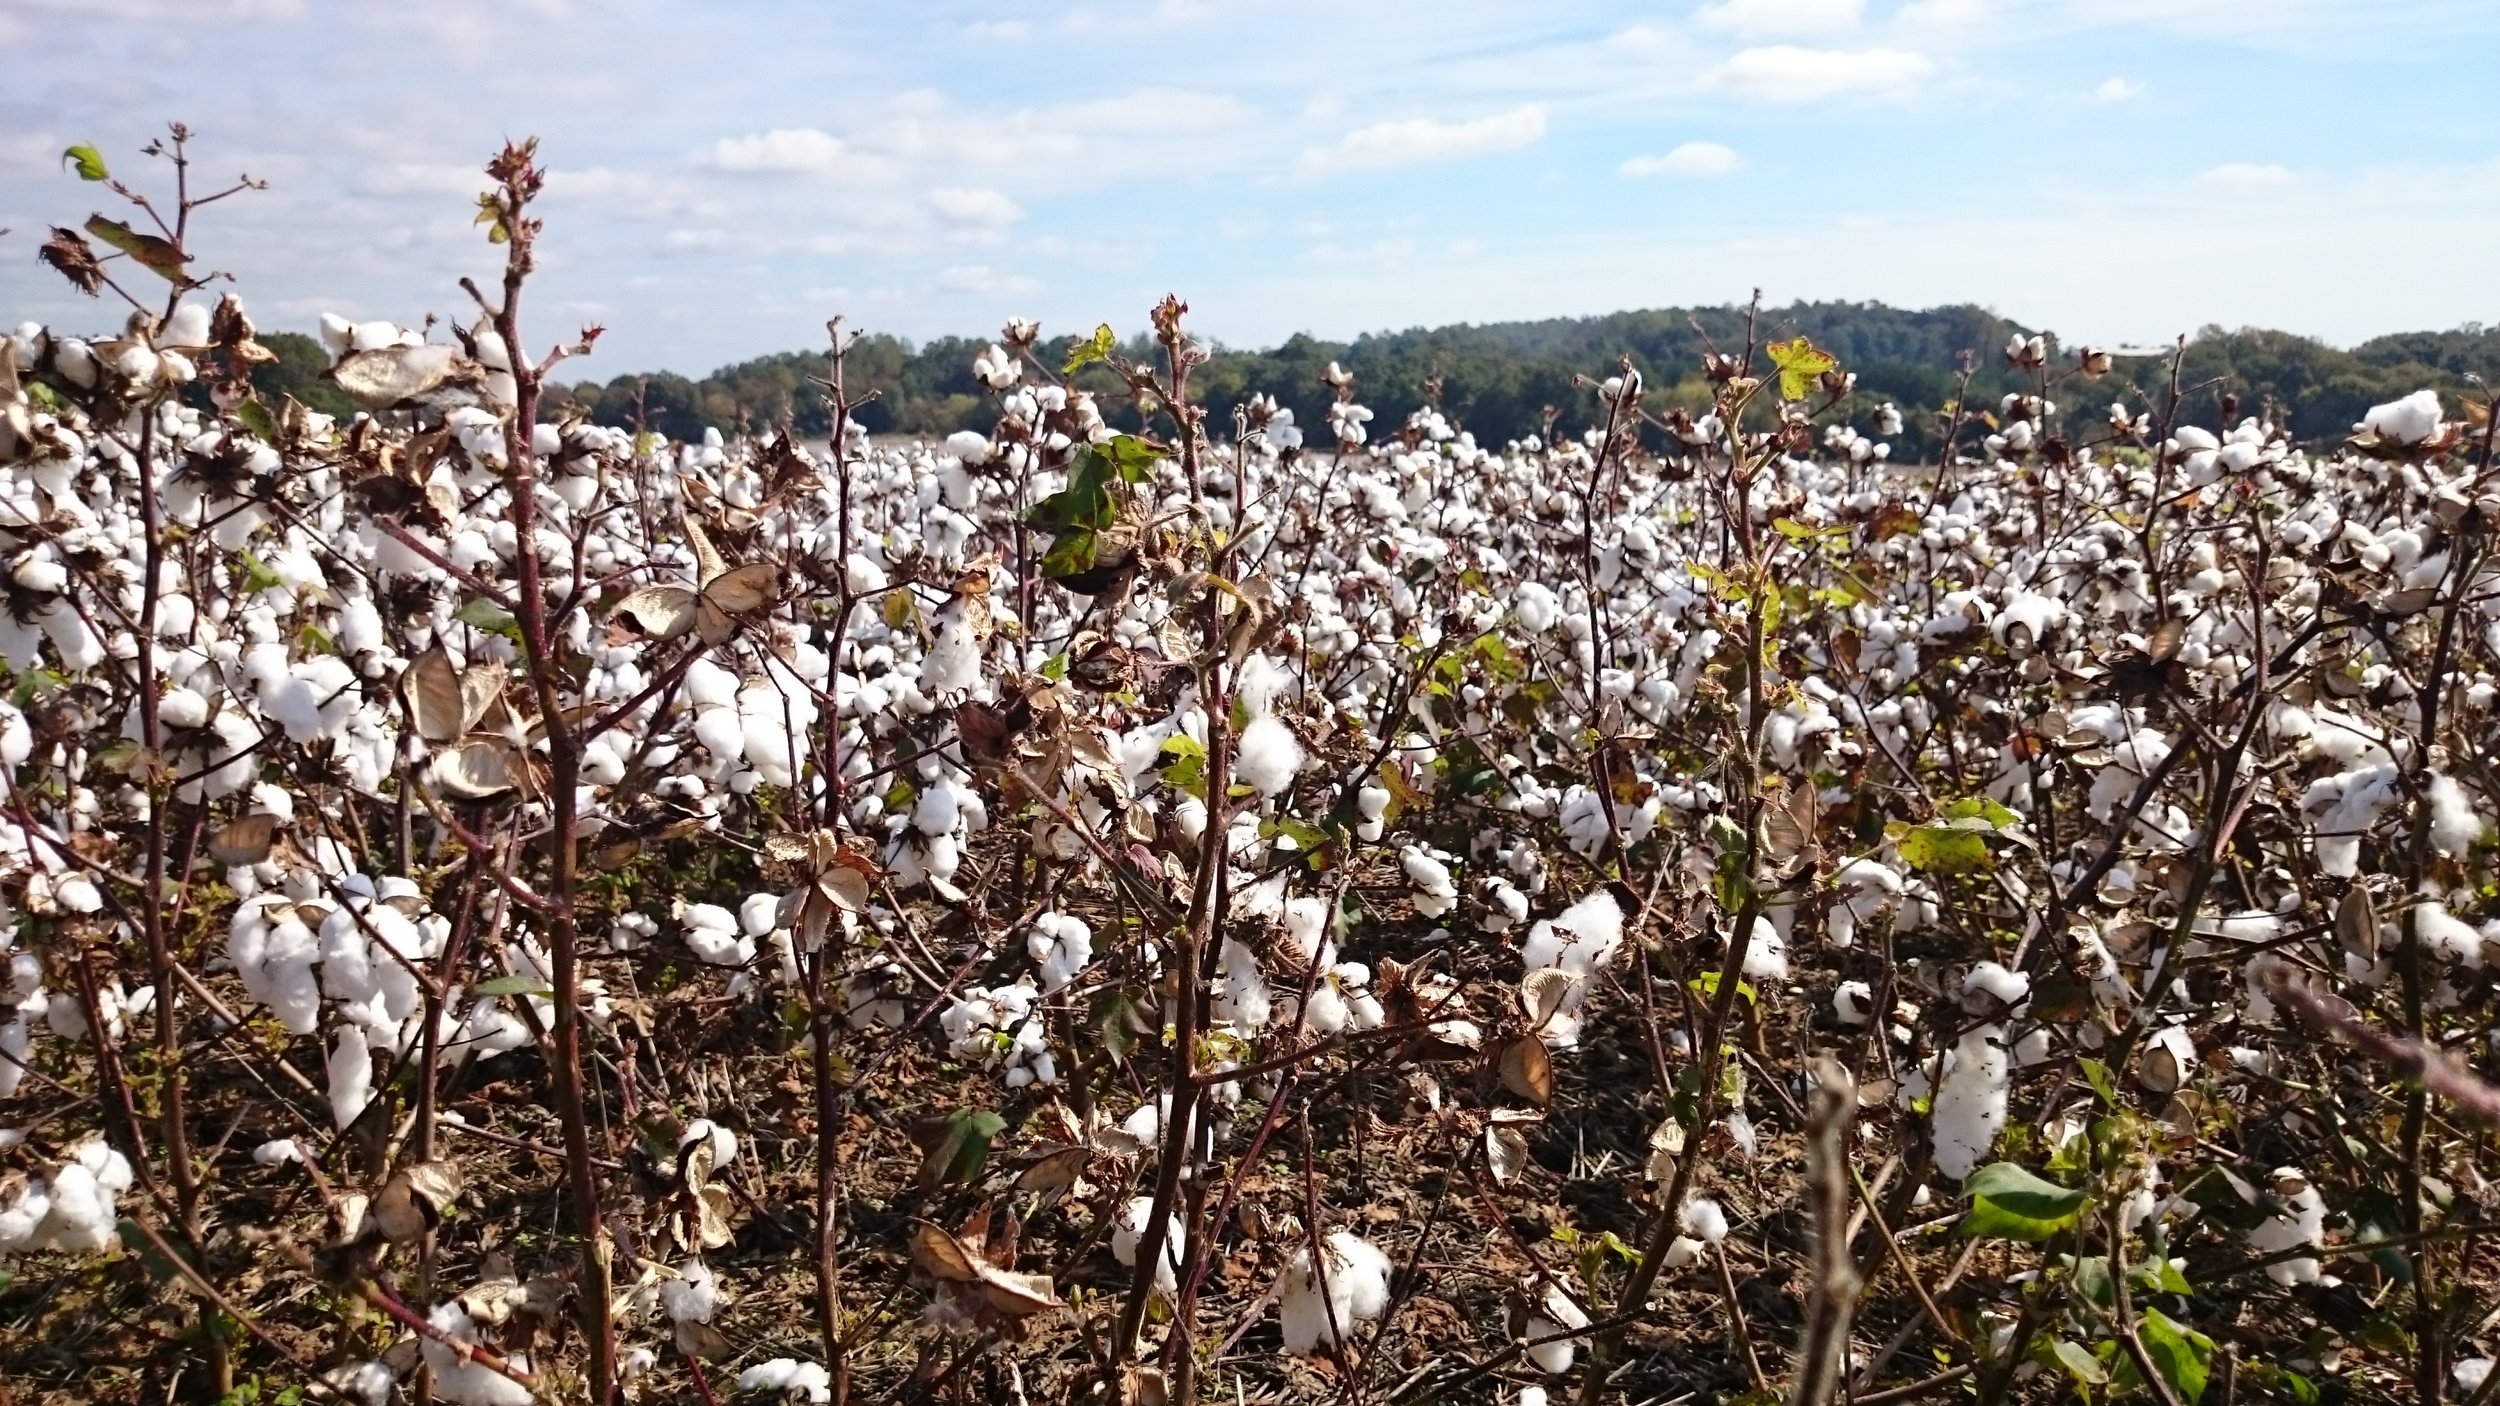 2016.10.15_Cotton Field 1.jpg